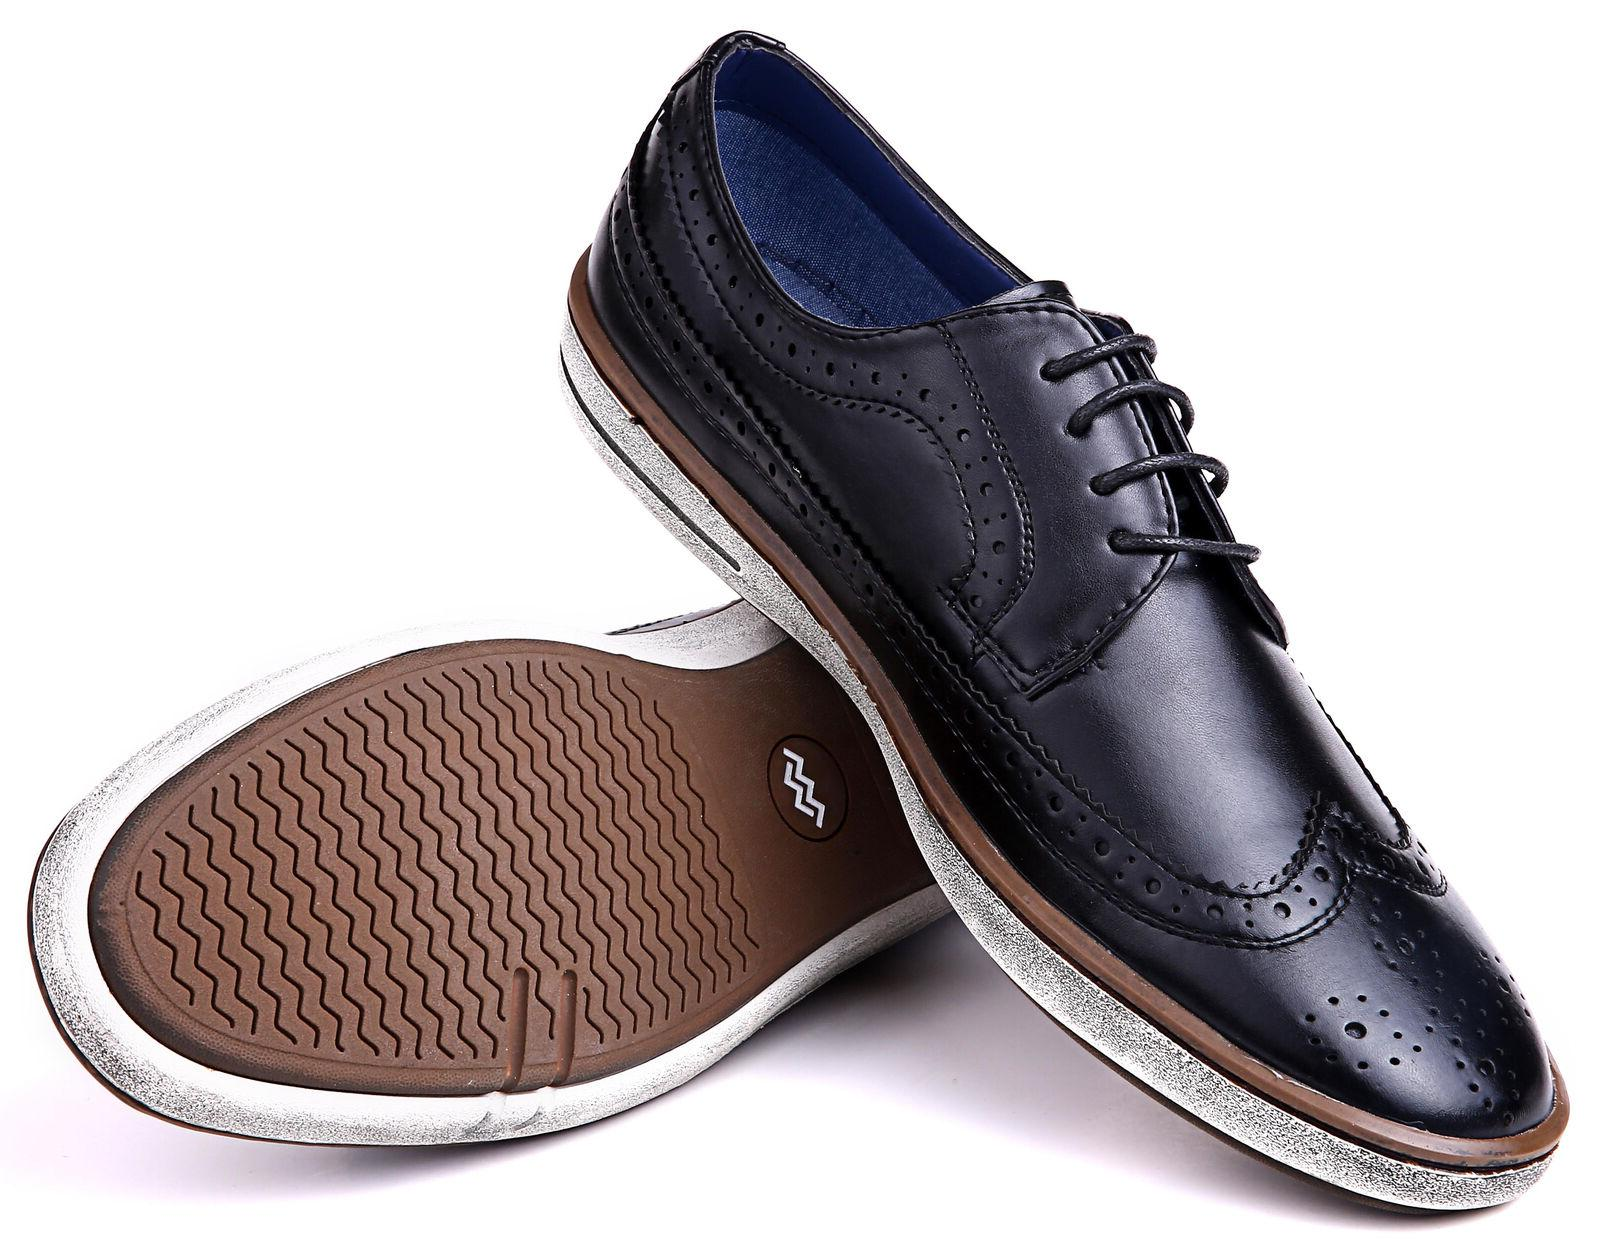 Mio Shoes - Casual Oxford Shoes for